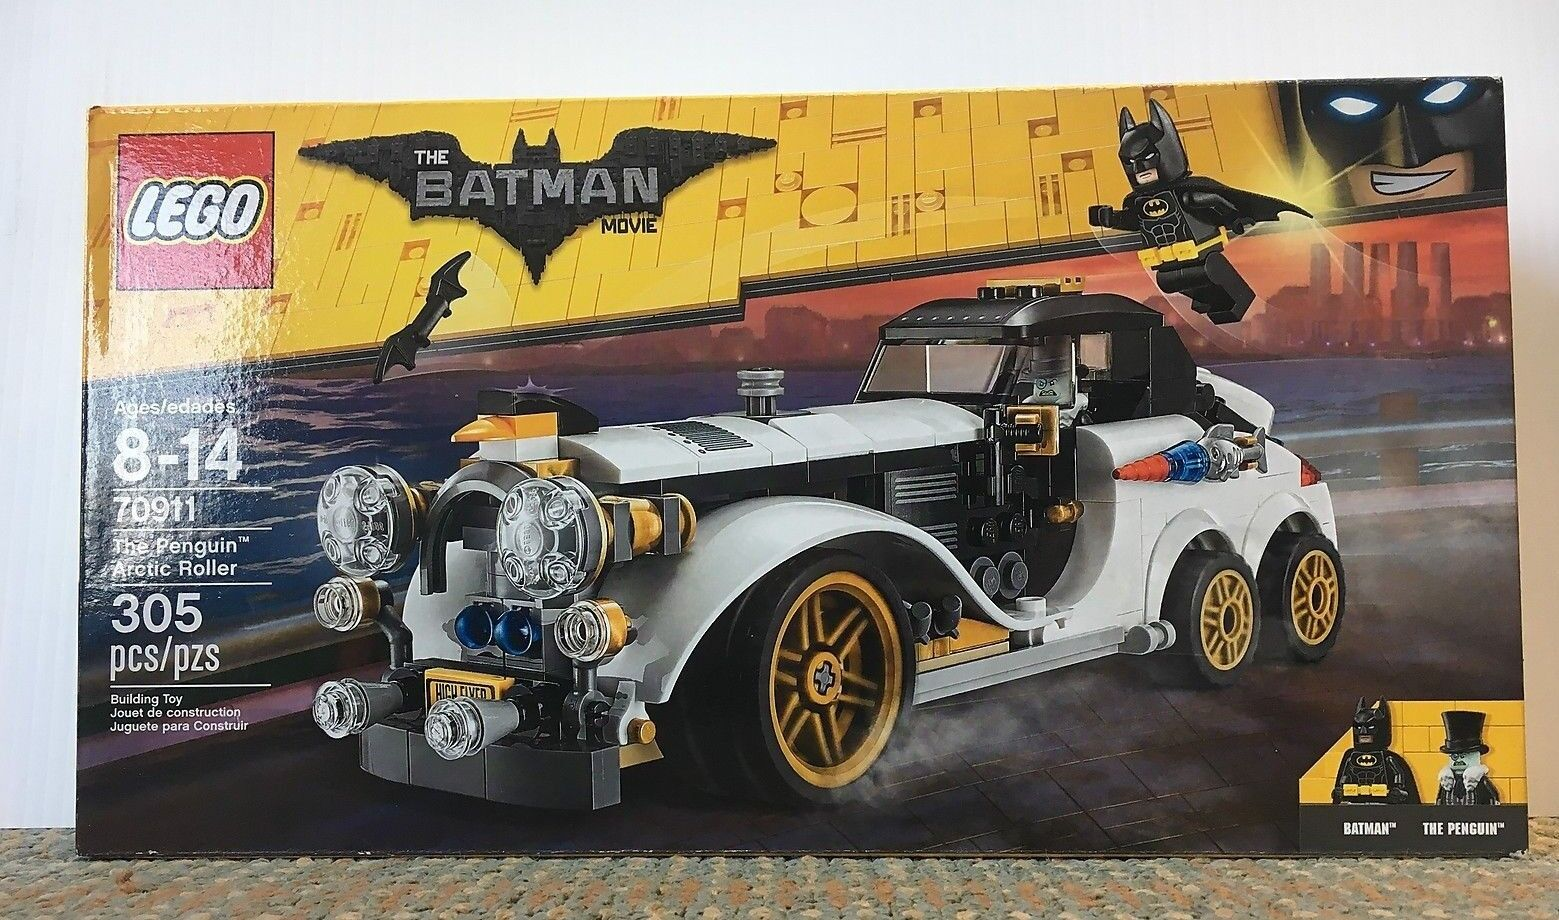 LEGO NIB 70911 The Penguin Arctic Roller The Lego Batman Movie